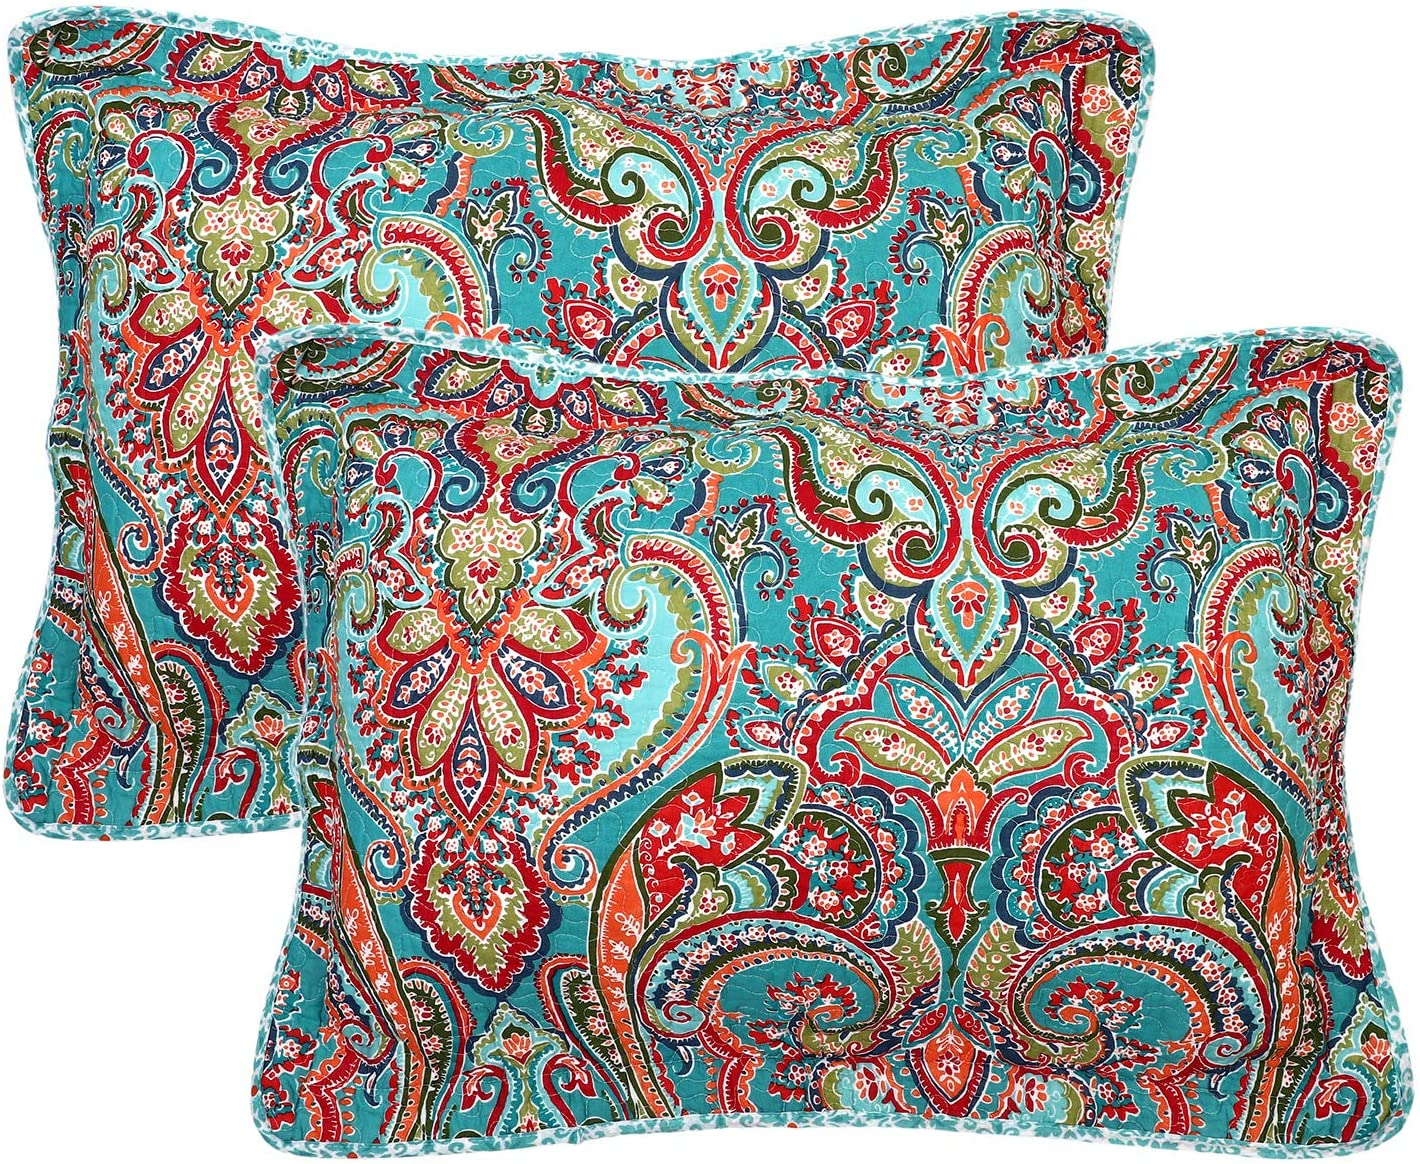 Newrara 100% Cotton Quilted Pillow Shams Set of 2 Standard Size Boho Pillow Cases Bohemian Pillow Covers (Red)